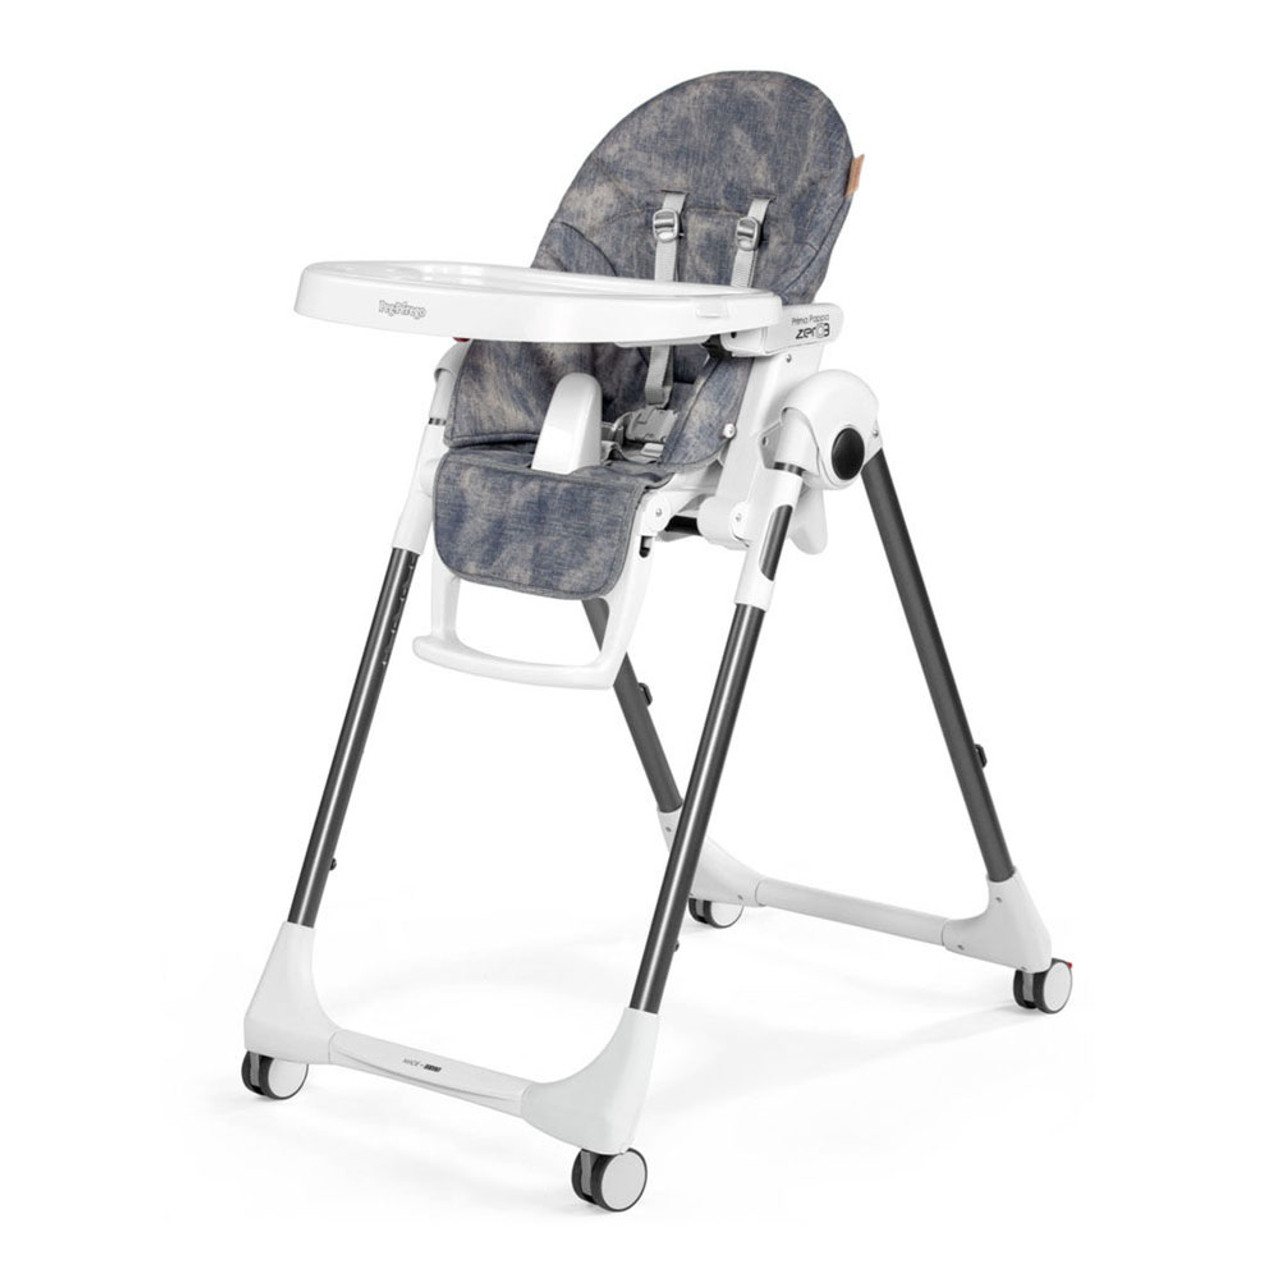 Perego High Chair Peg Perego Prima Pappa Zero 3 High Chair Denim